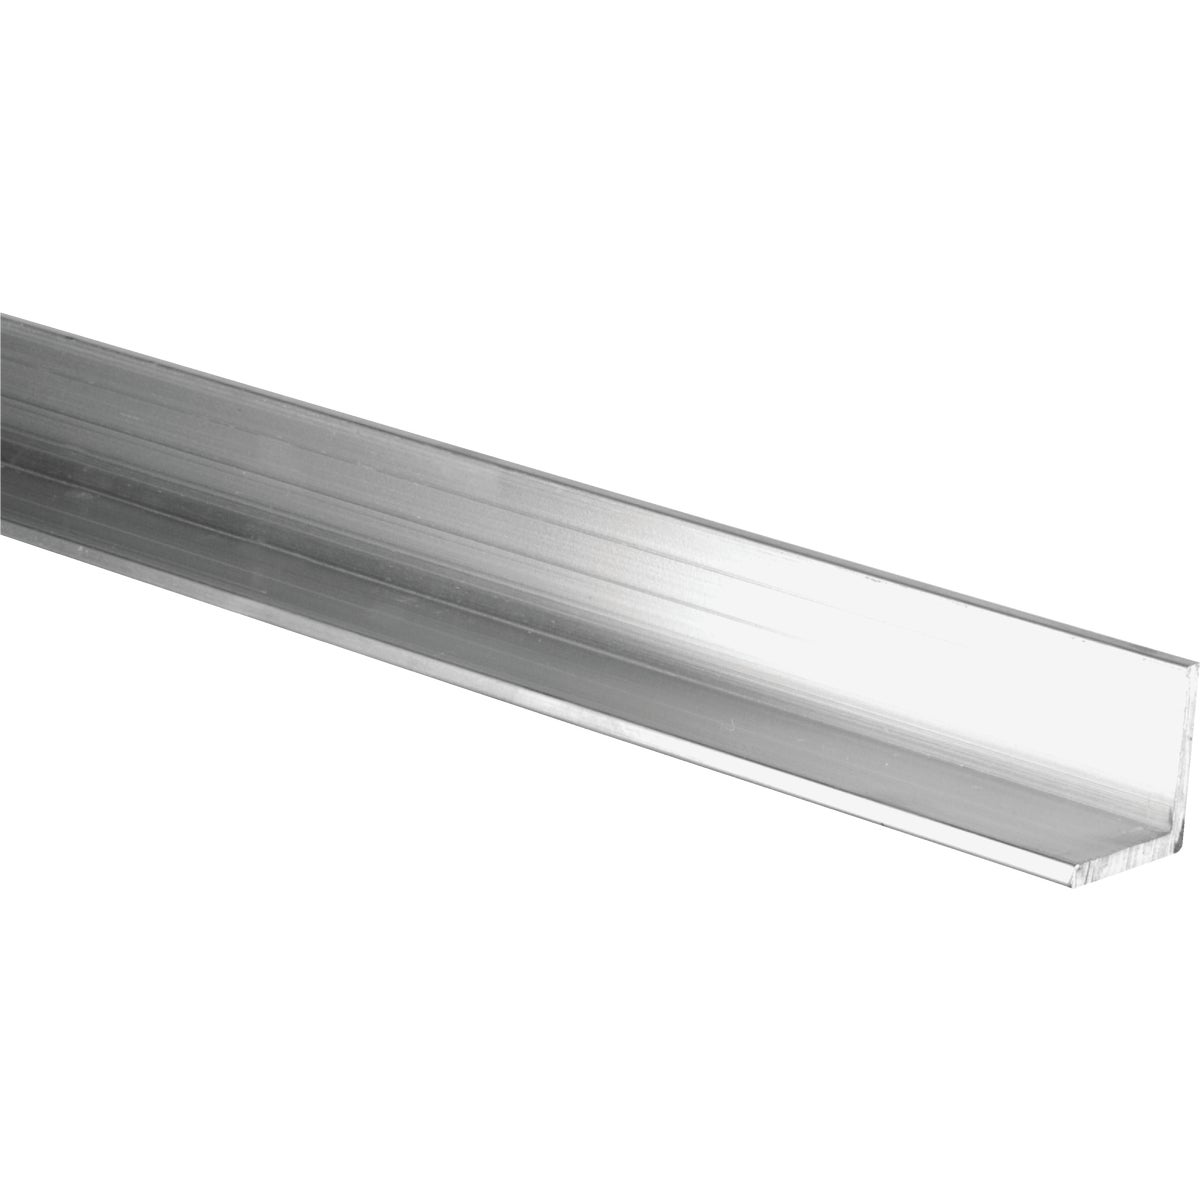 1/16X1-1/2X6' ALUM ANGLE - N247361 by National Mfg Co